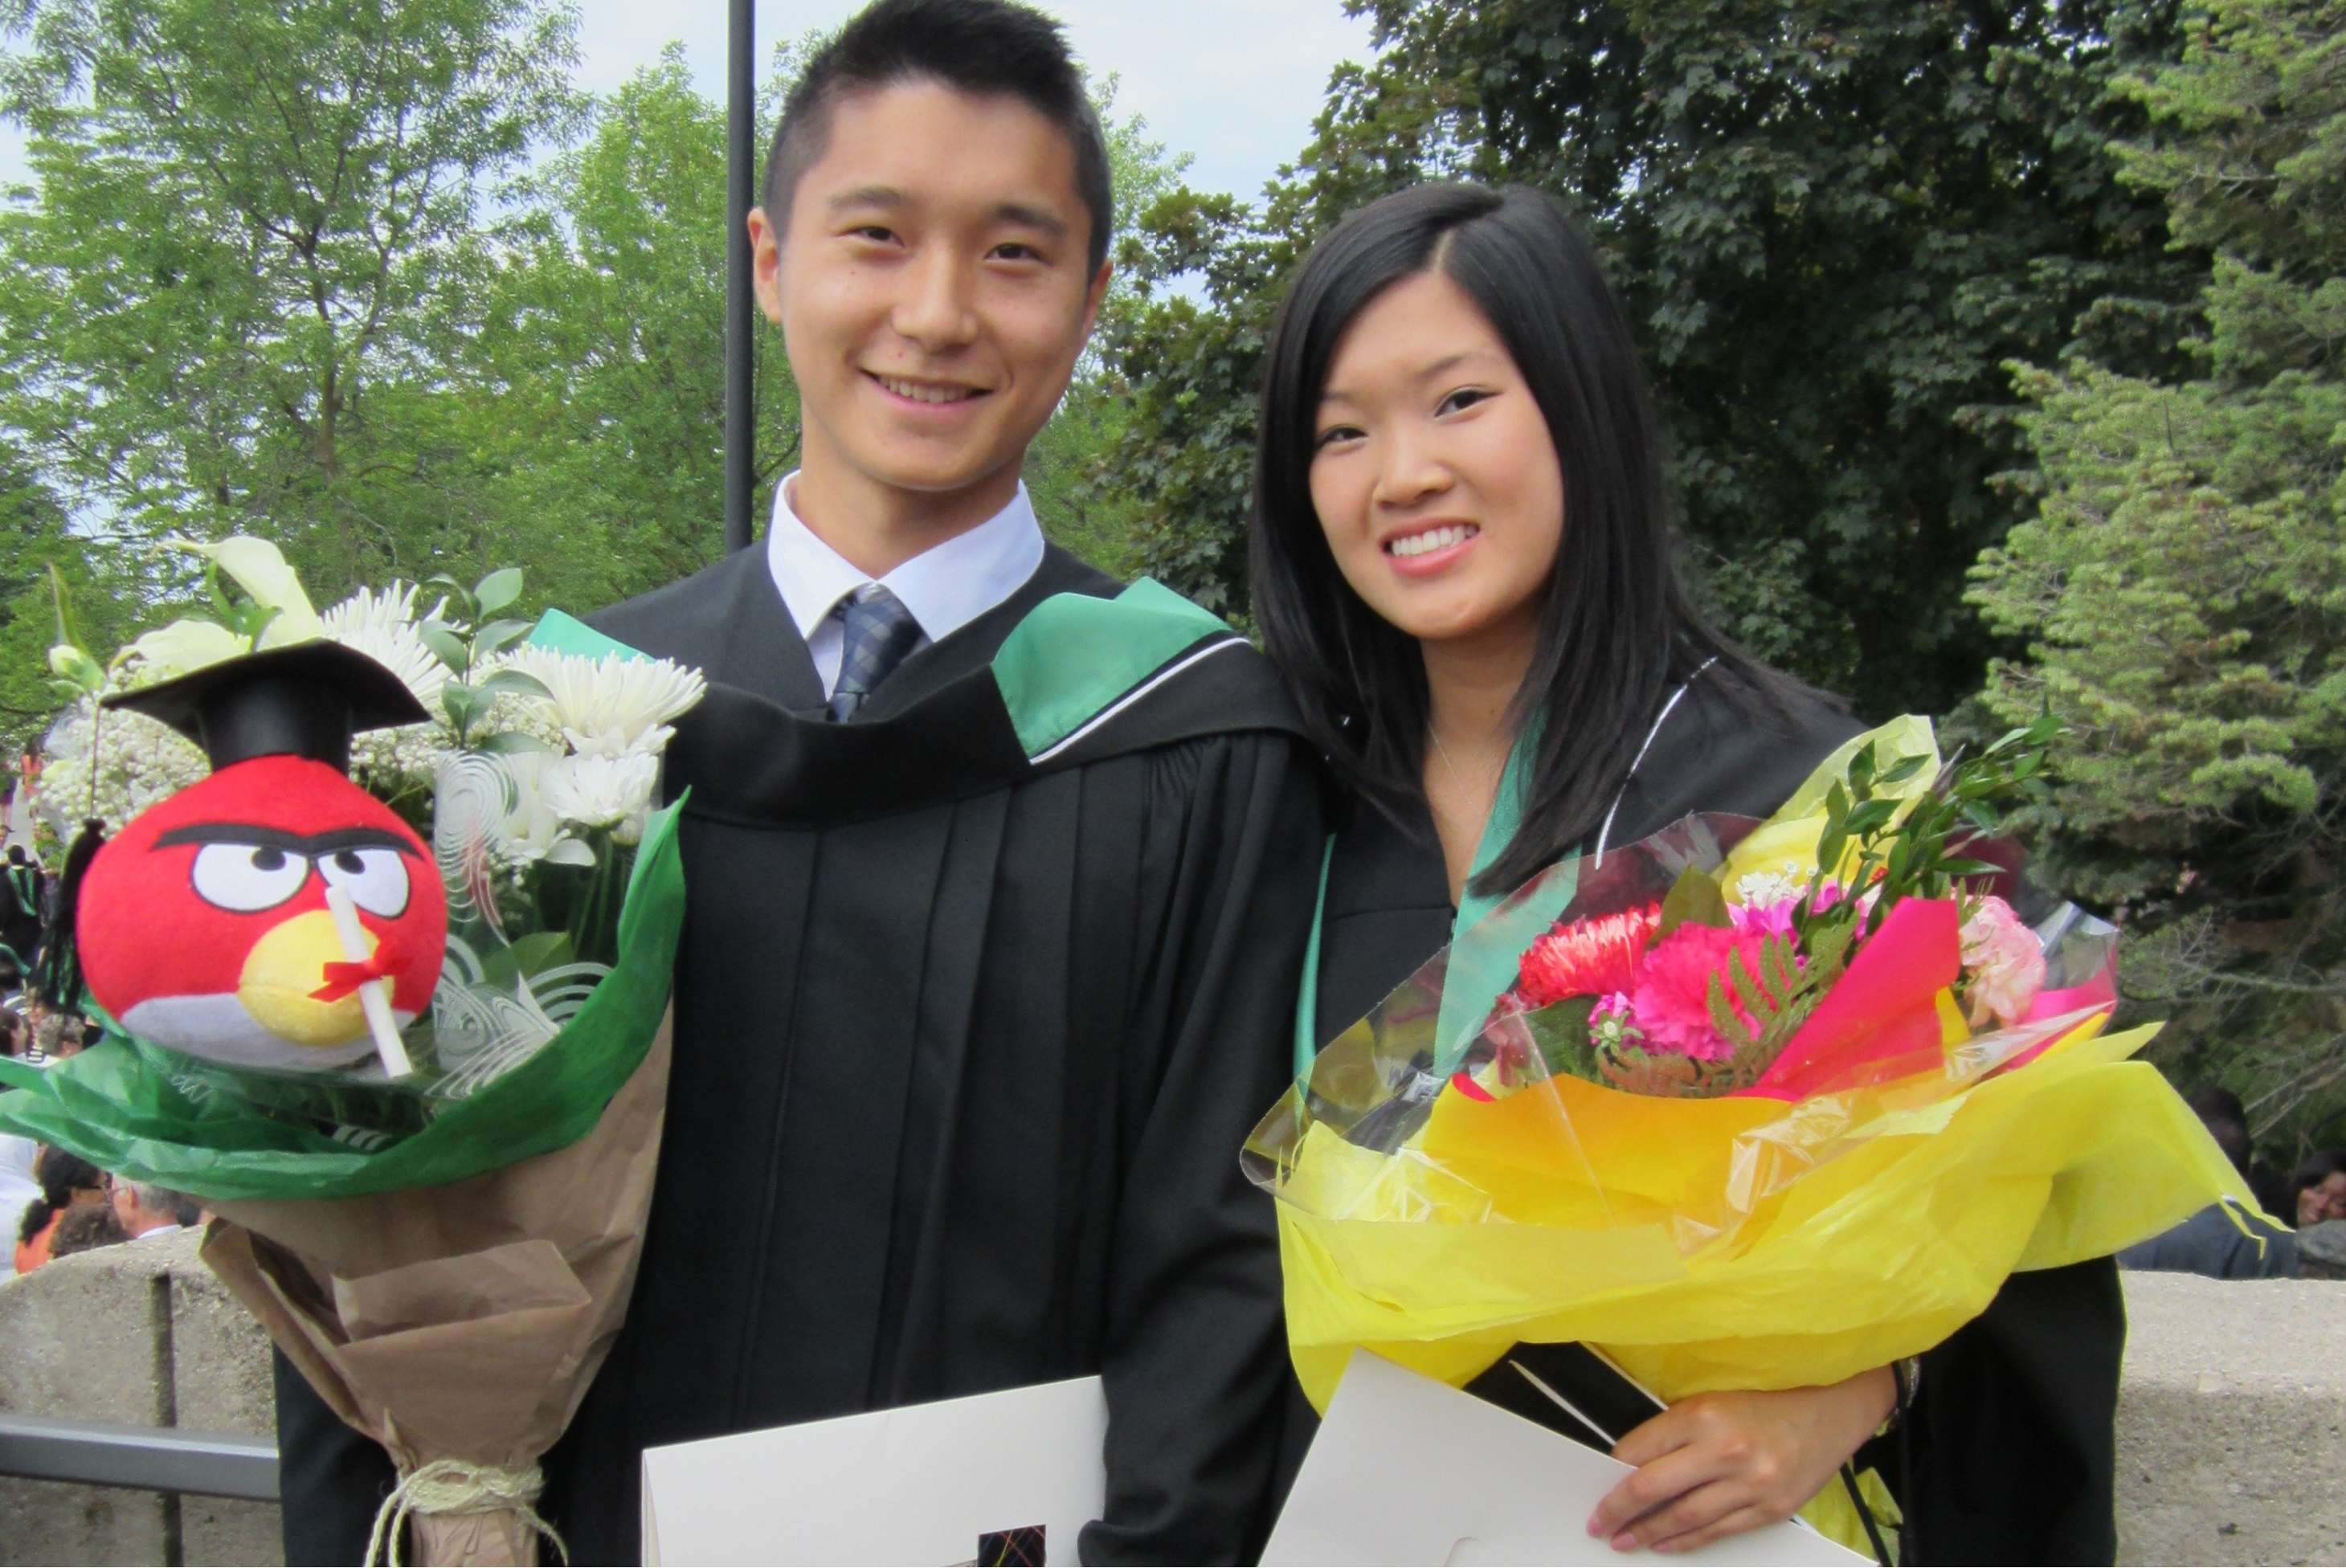 Justin and Daphne in their graduation gowns, on their Convocation Day